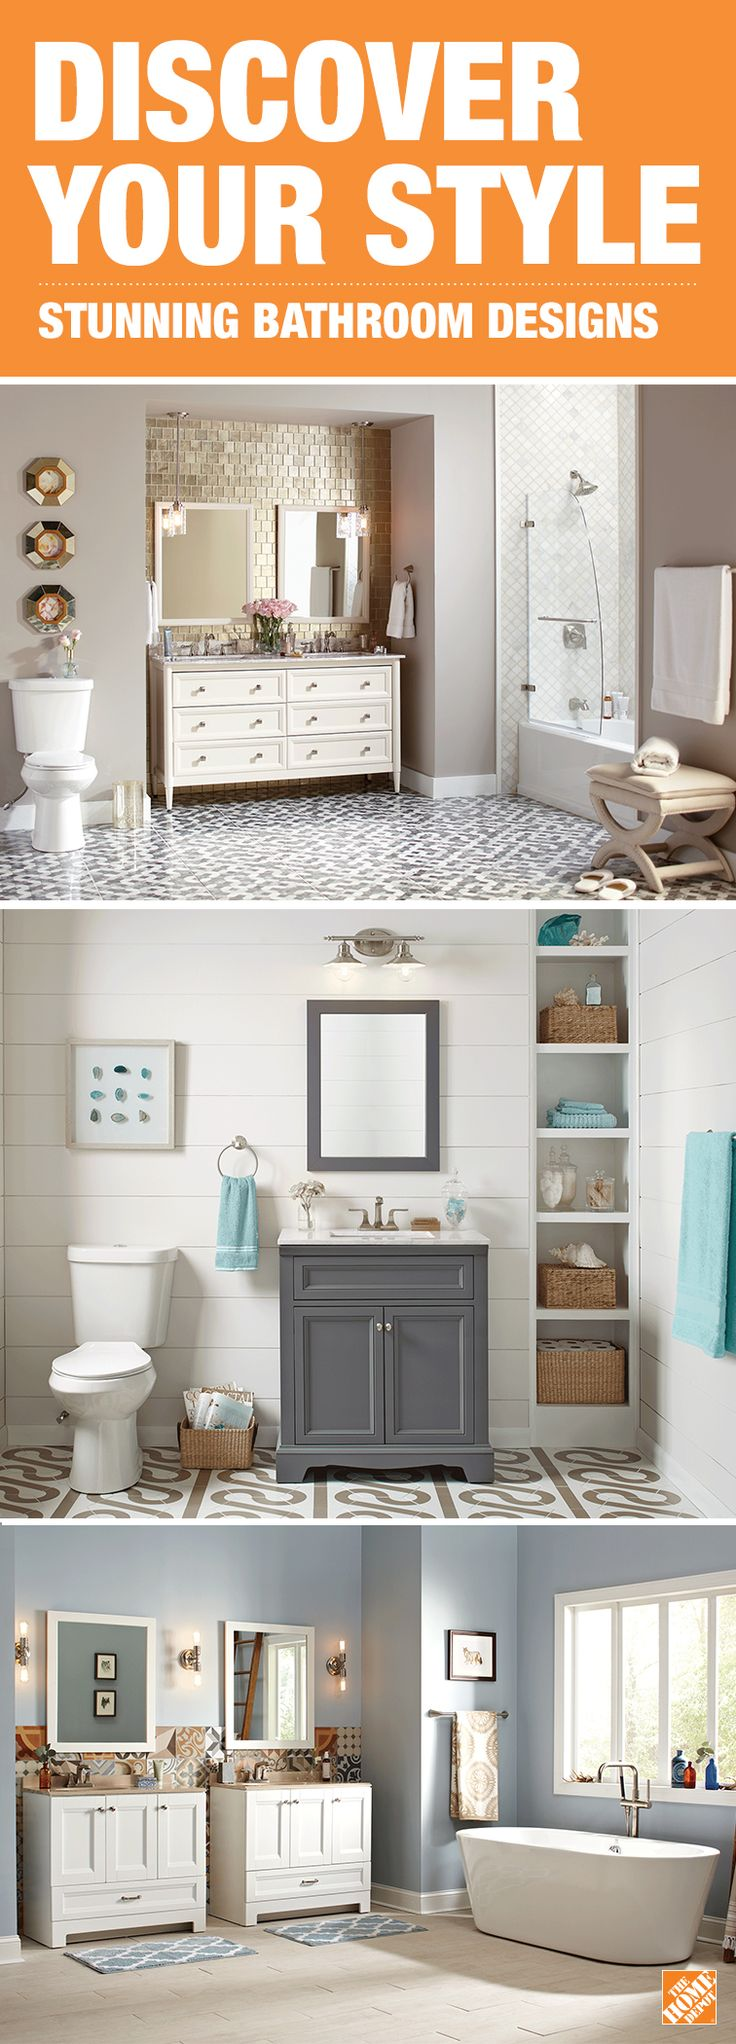 415 best Bathroom Design Ideas images on Pinterest | Bathroom ideas ...